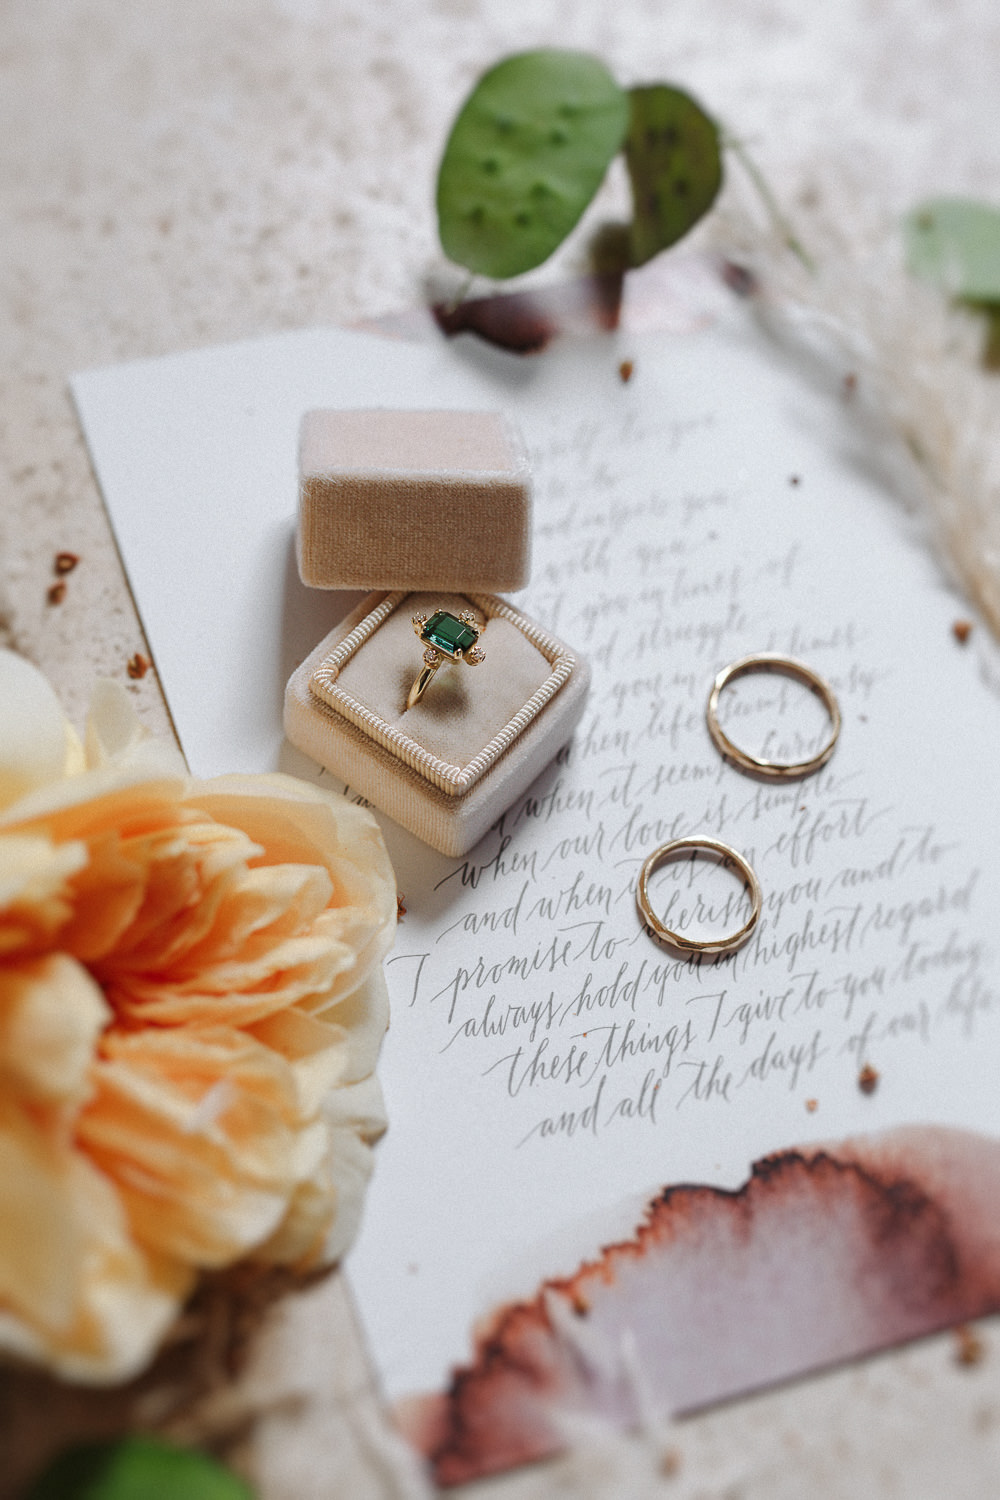 Stunning emerald engagement ring by My golden age lab | Photo: Camilla Anchisi Photography